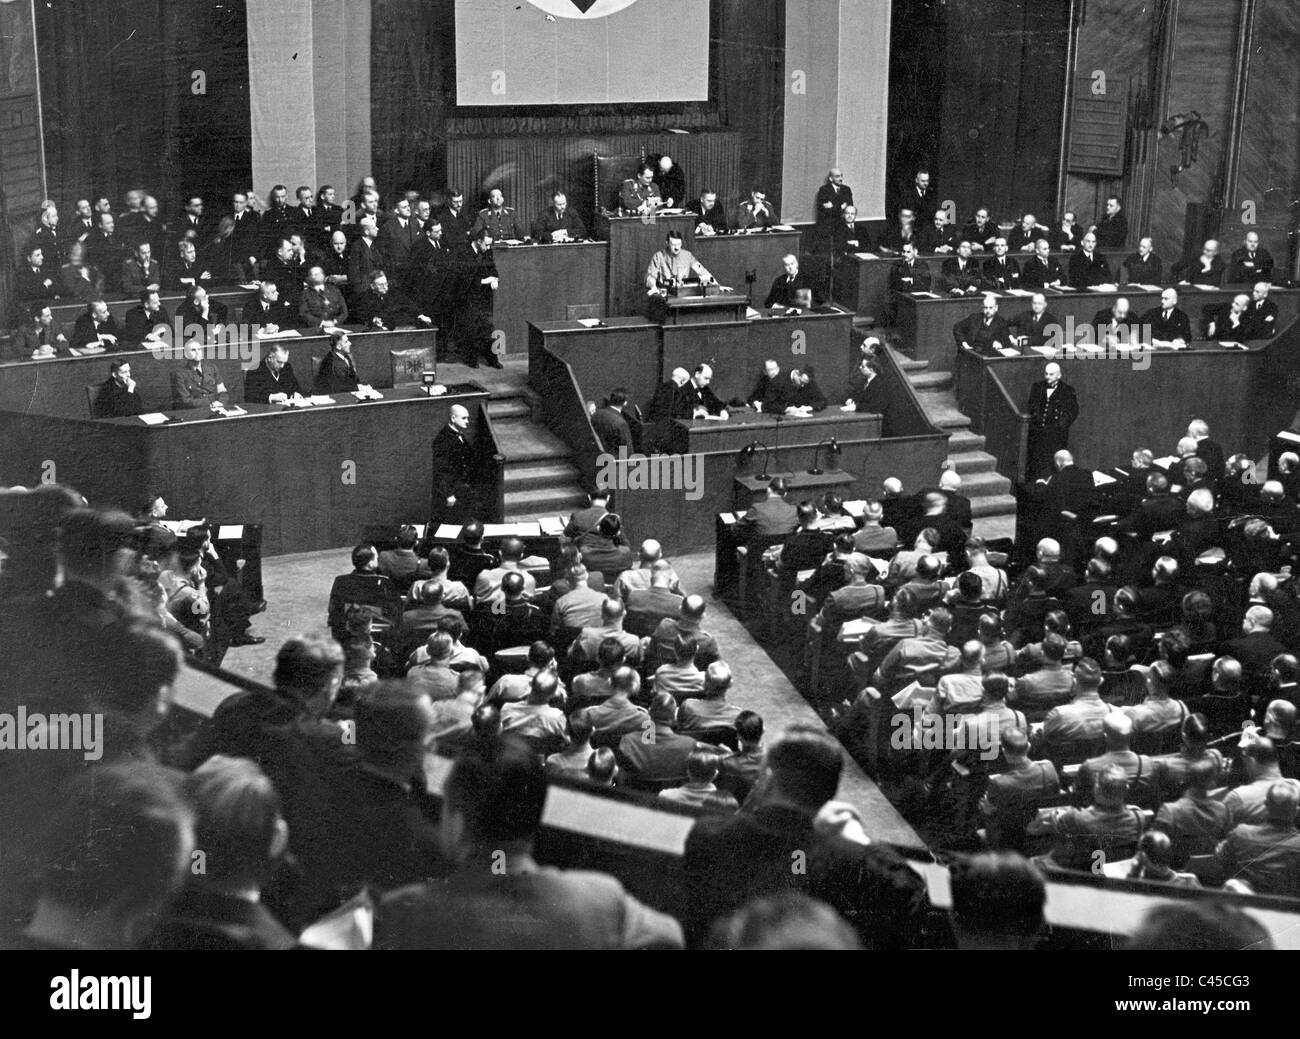 Adolf Hitler speaks to the Reichstag, 1933 - Stock Image